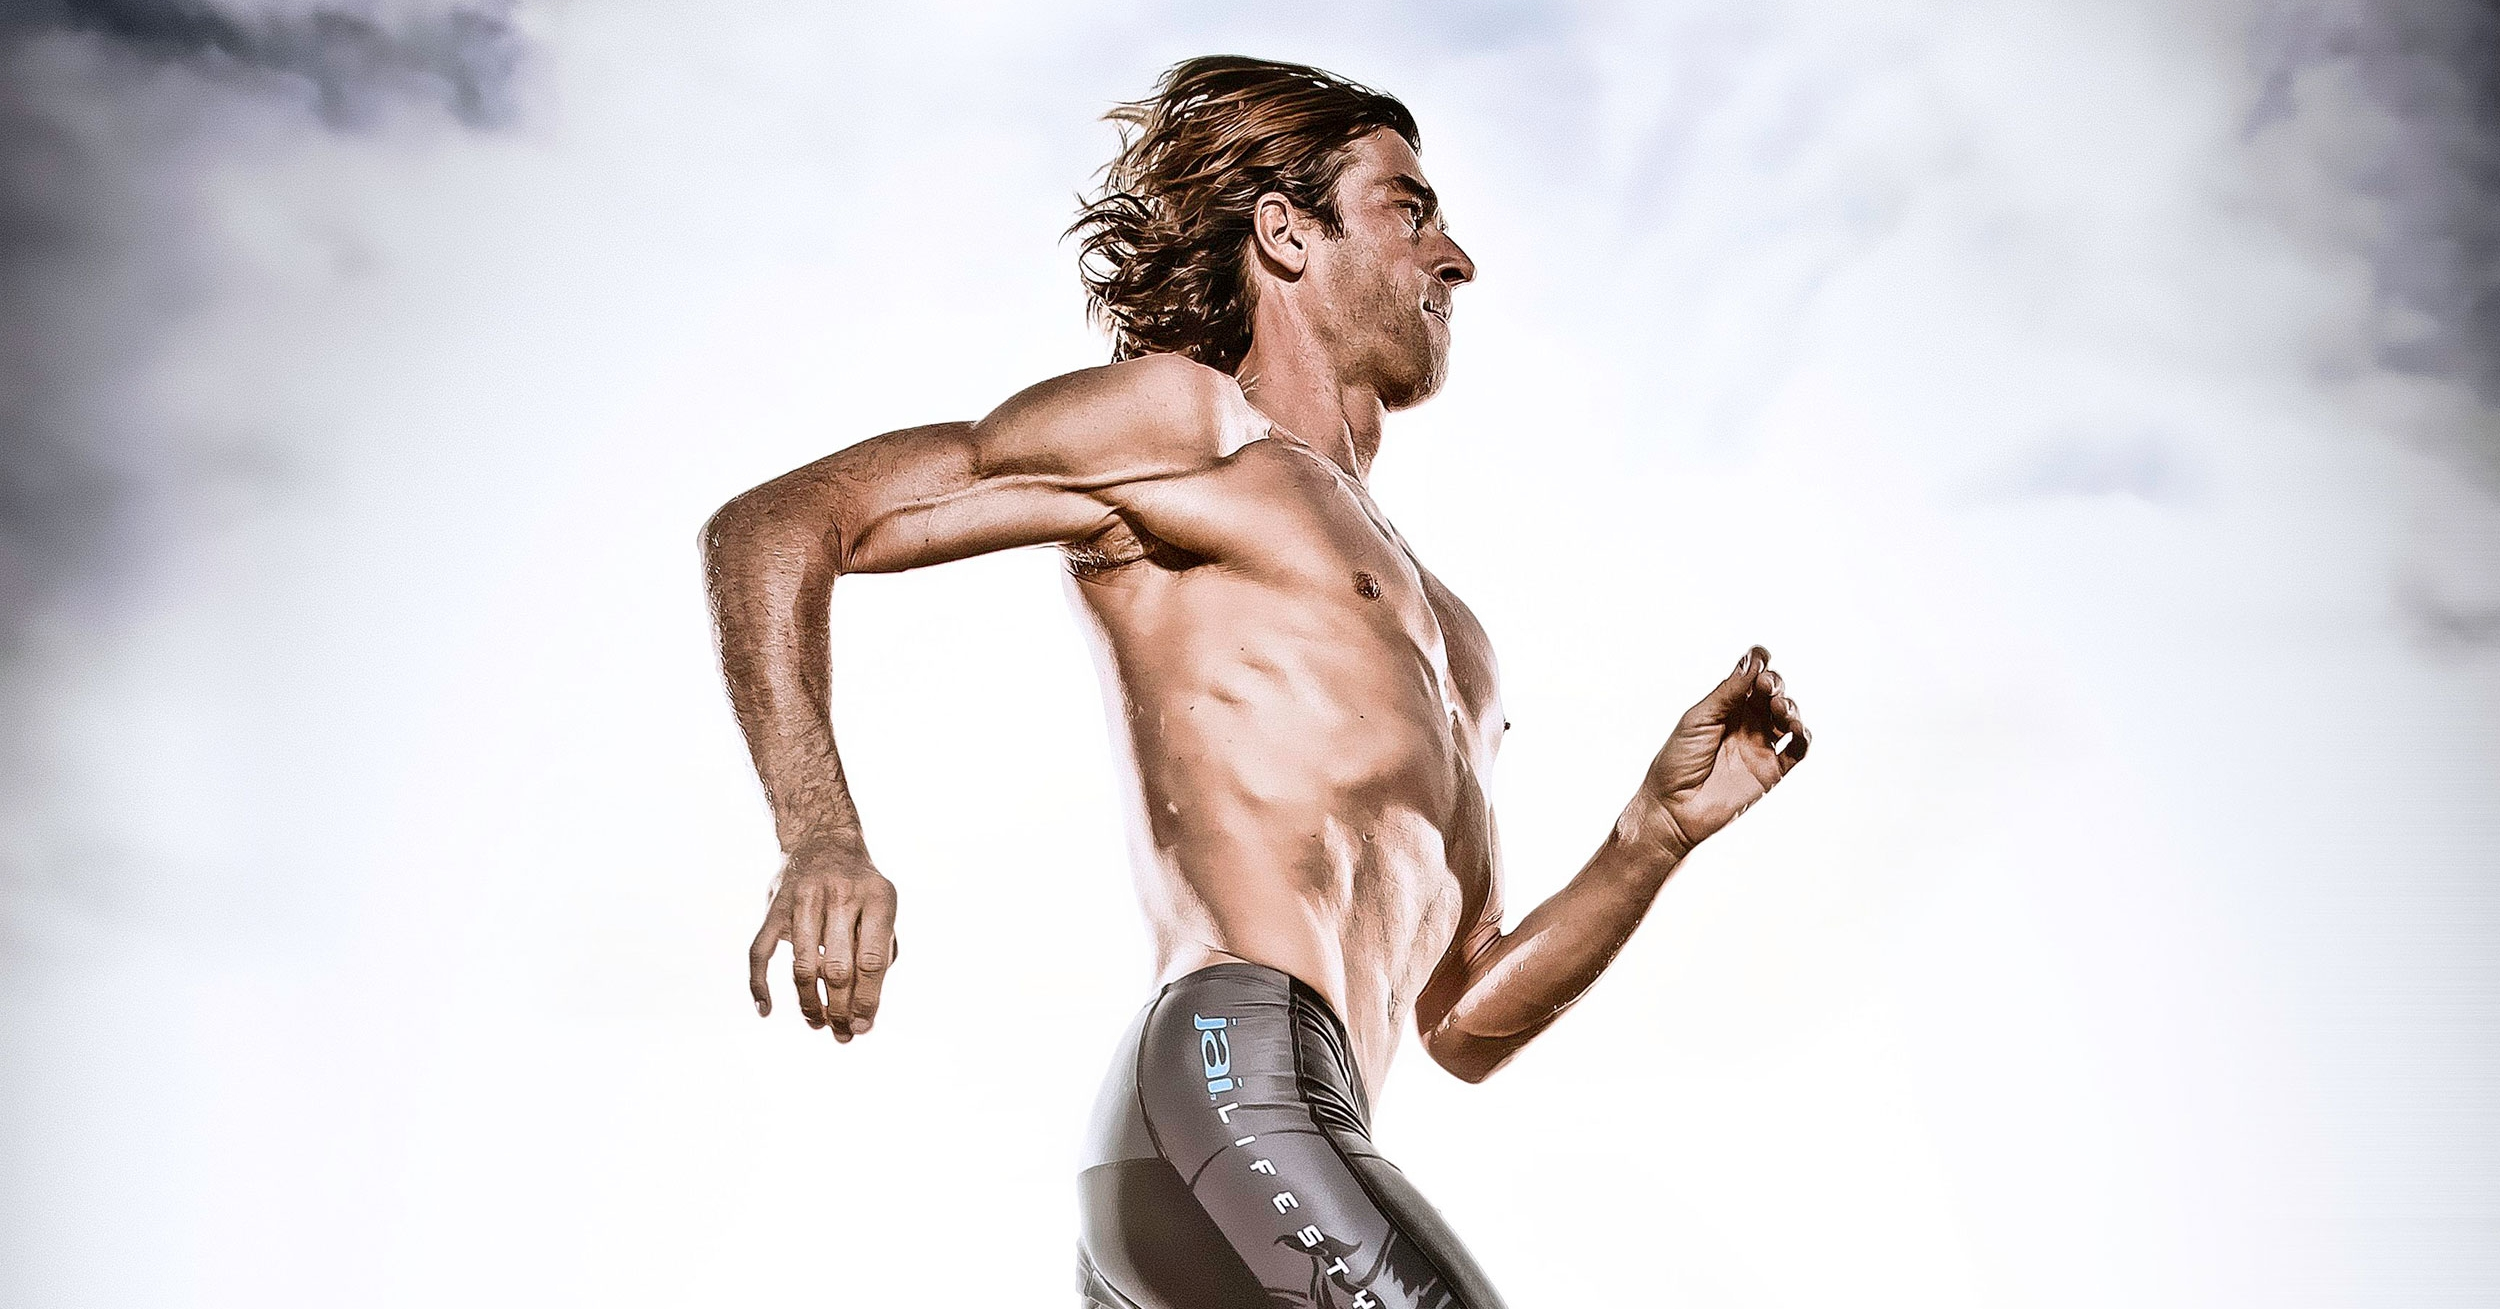 Rich Roll is crowned the fittest vegan by Men's Health Magazine.